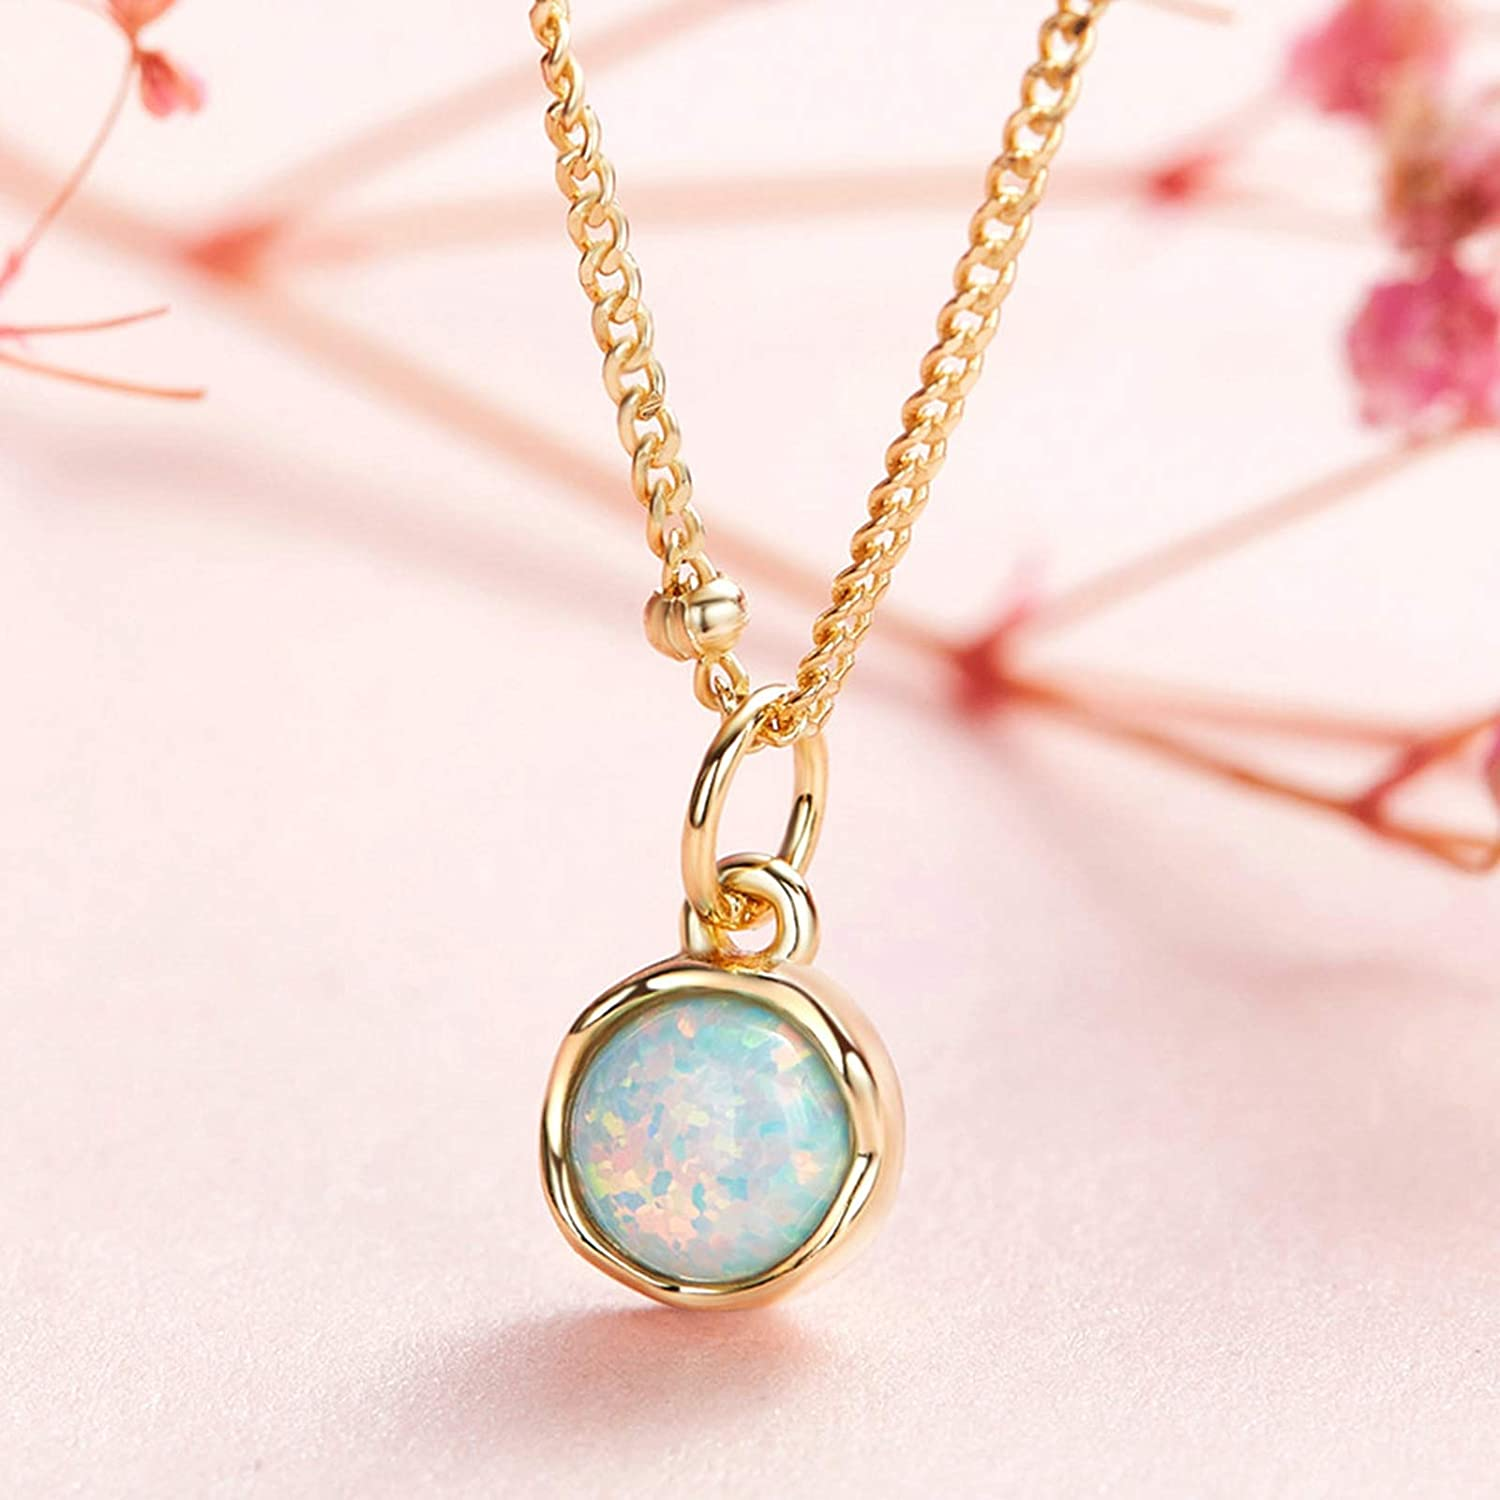 Aooaz Silver Material Necklace Womens Girls Circle Round Stone Pendant Necklaces Anniversary